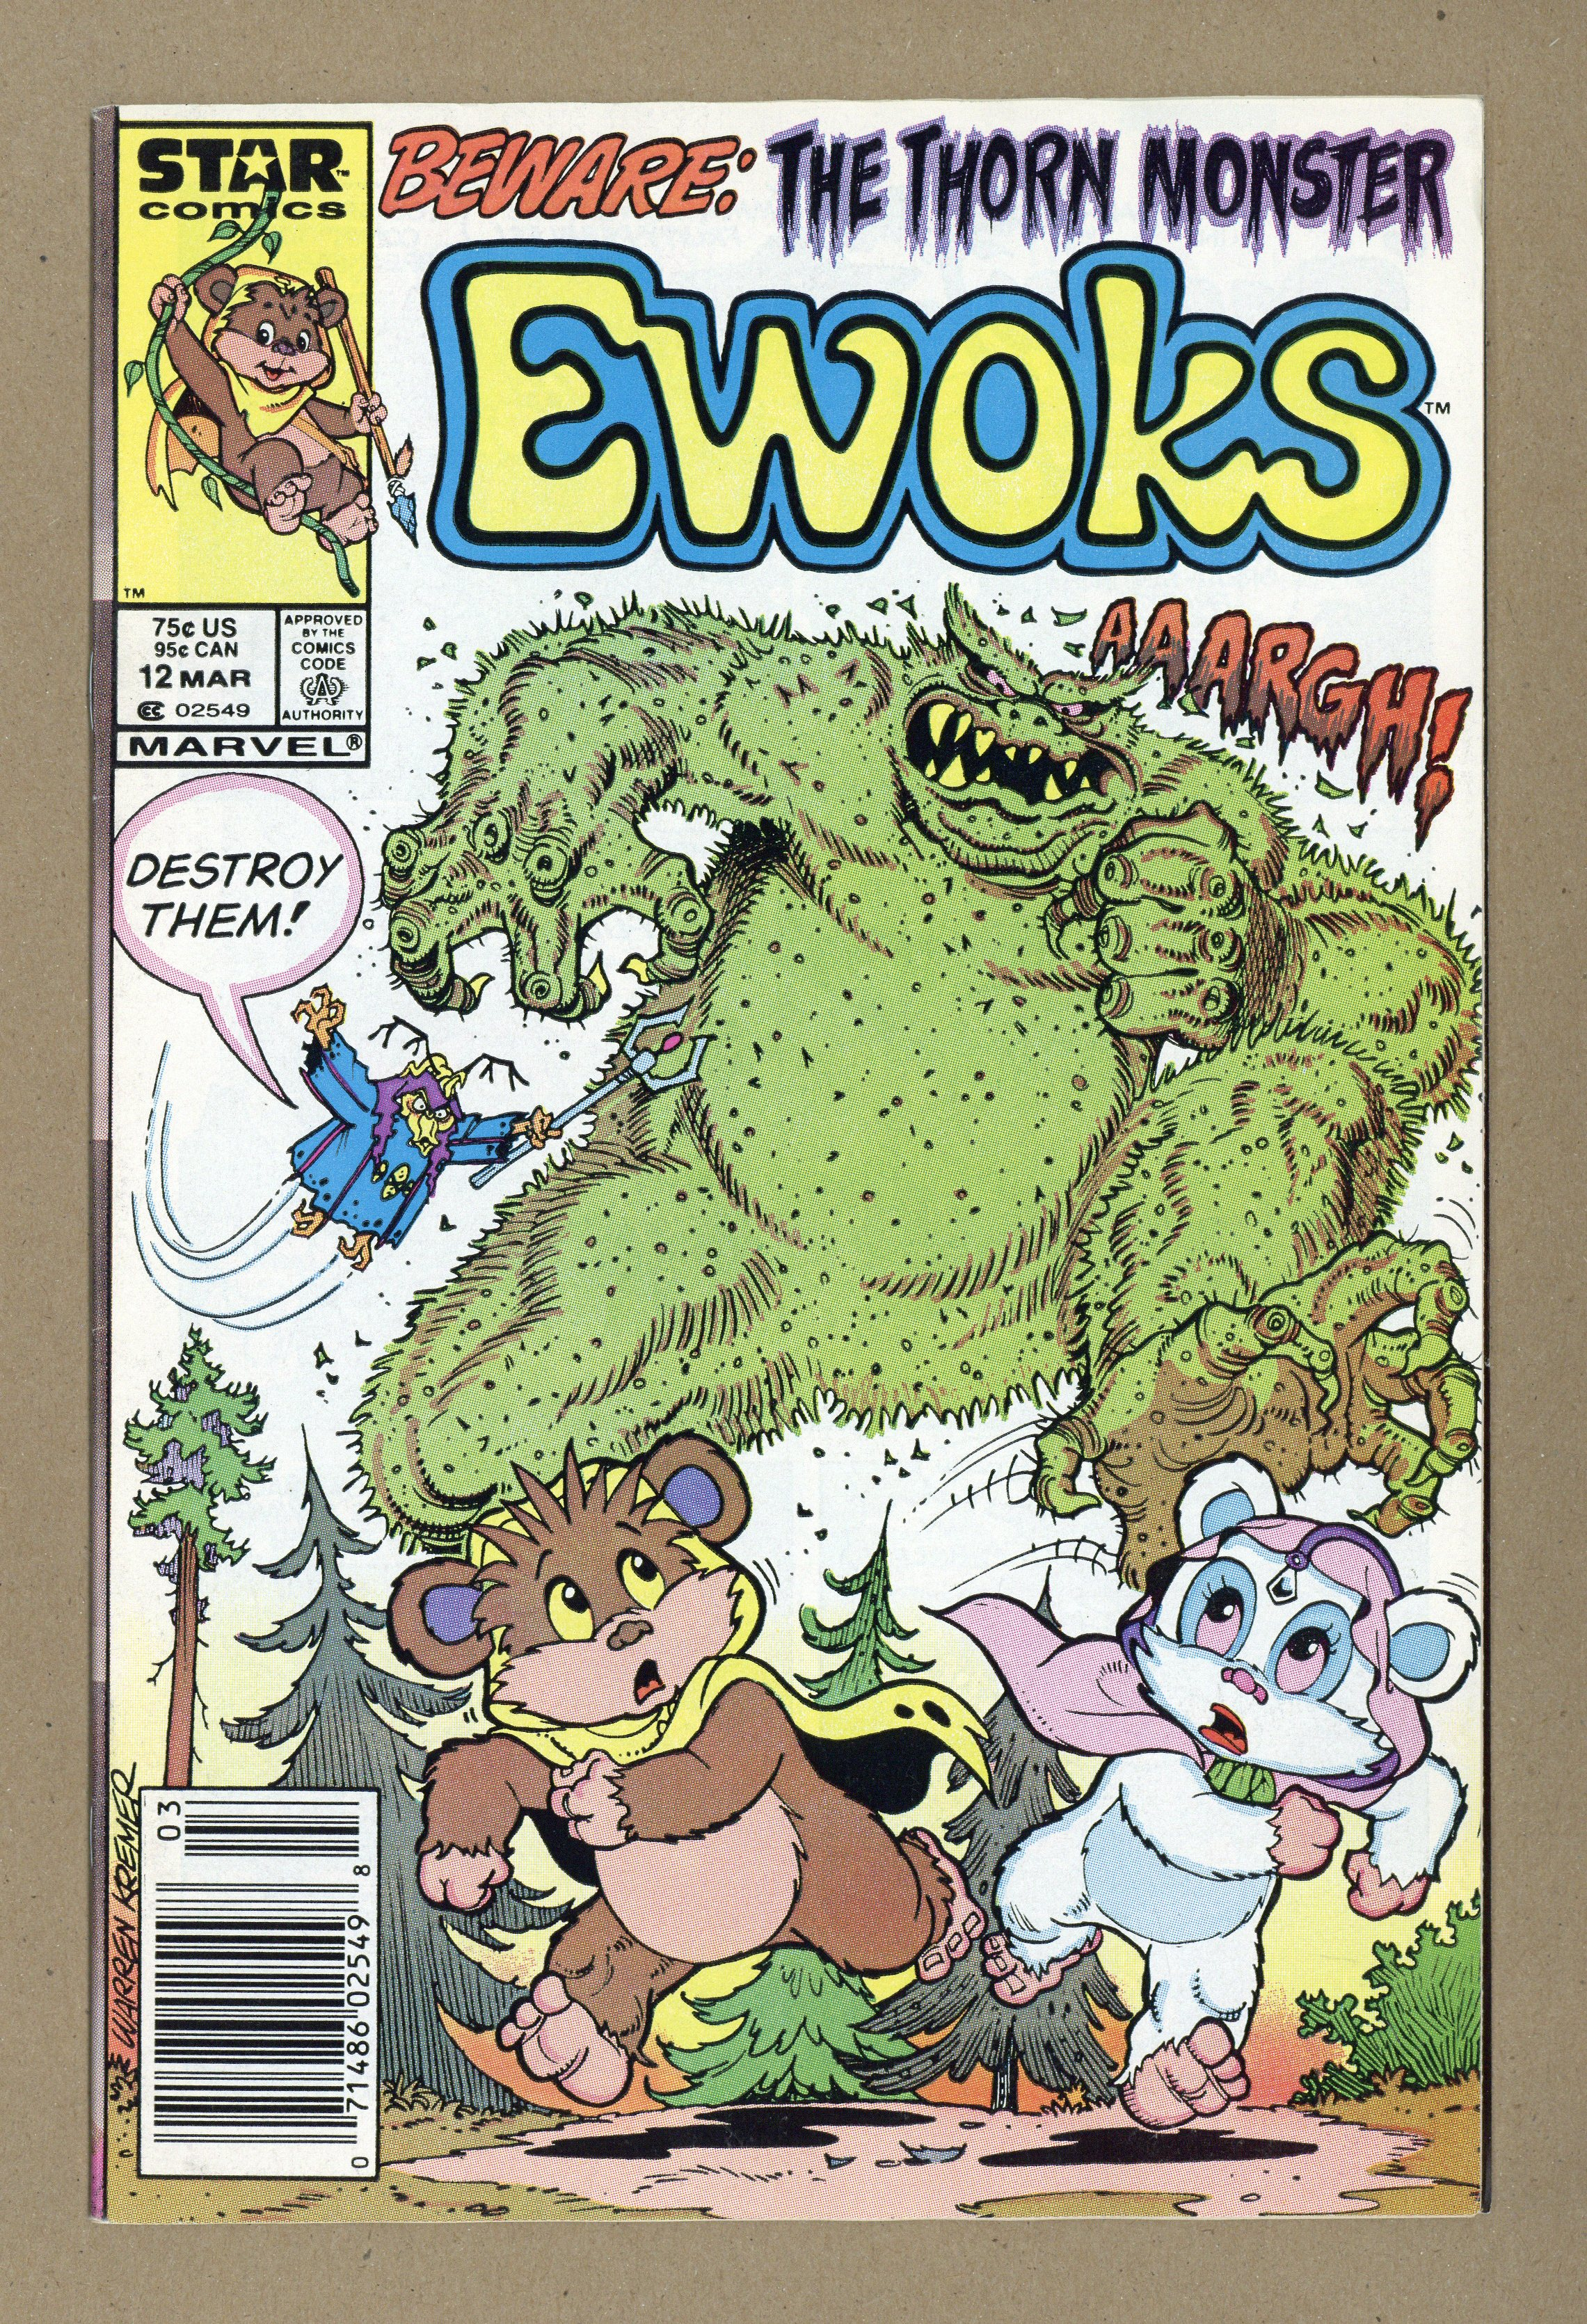 Details about Ewoks (Marvel/Star Comics) #12 1987 FN 6 0